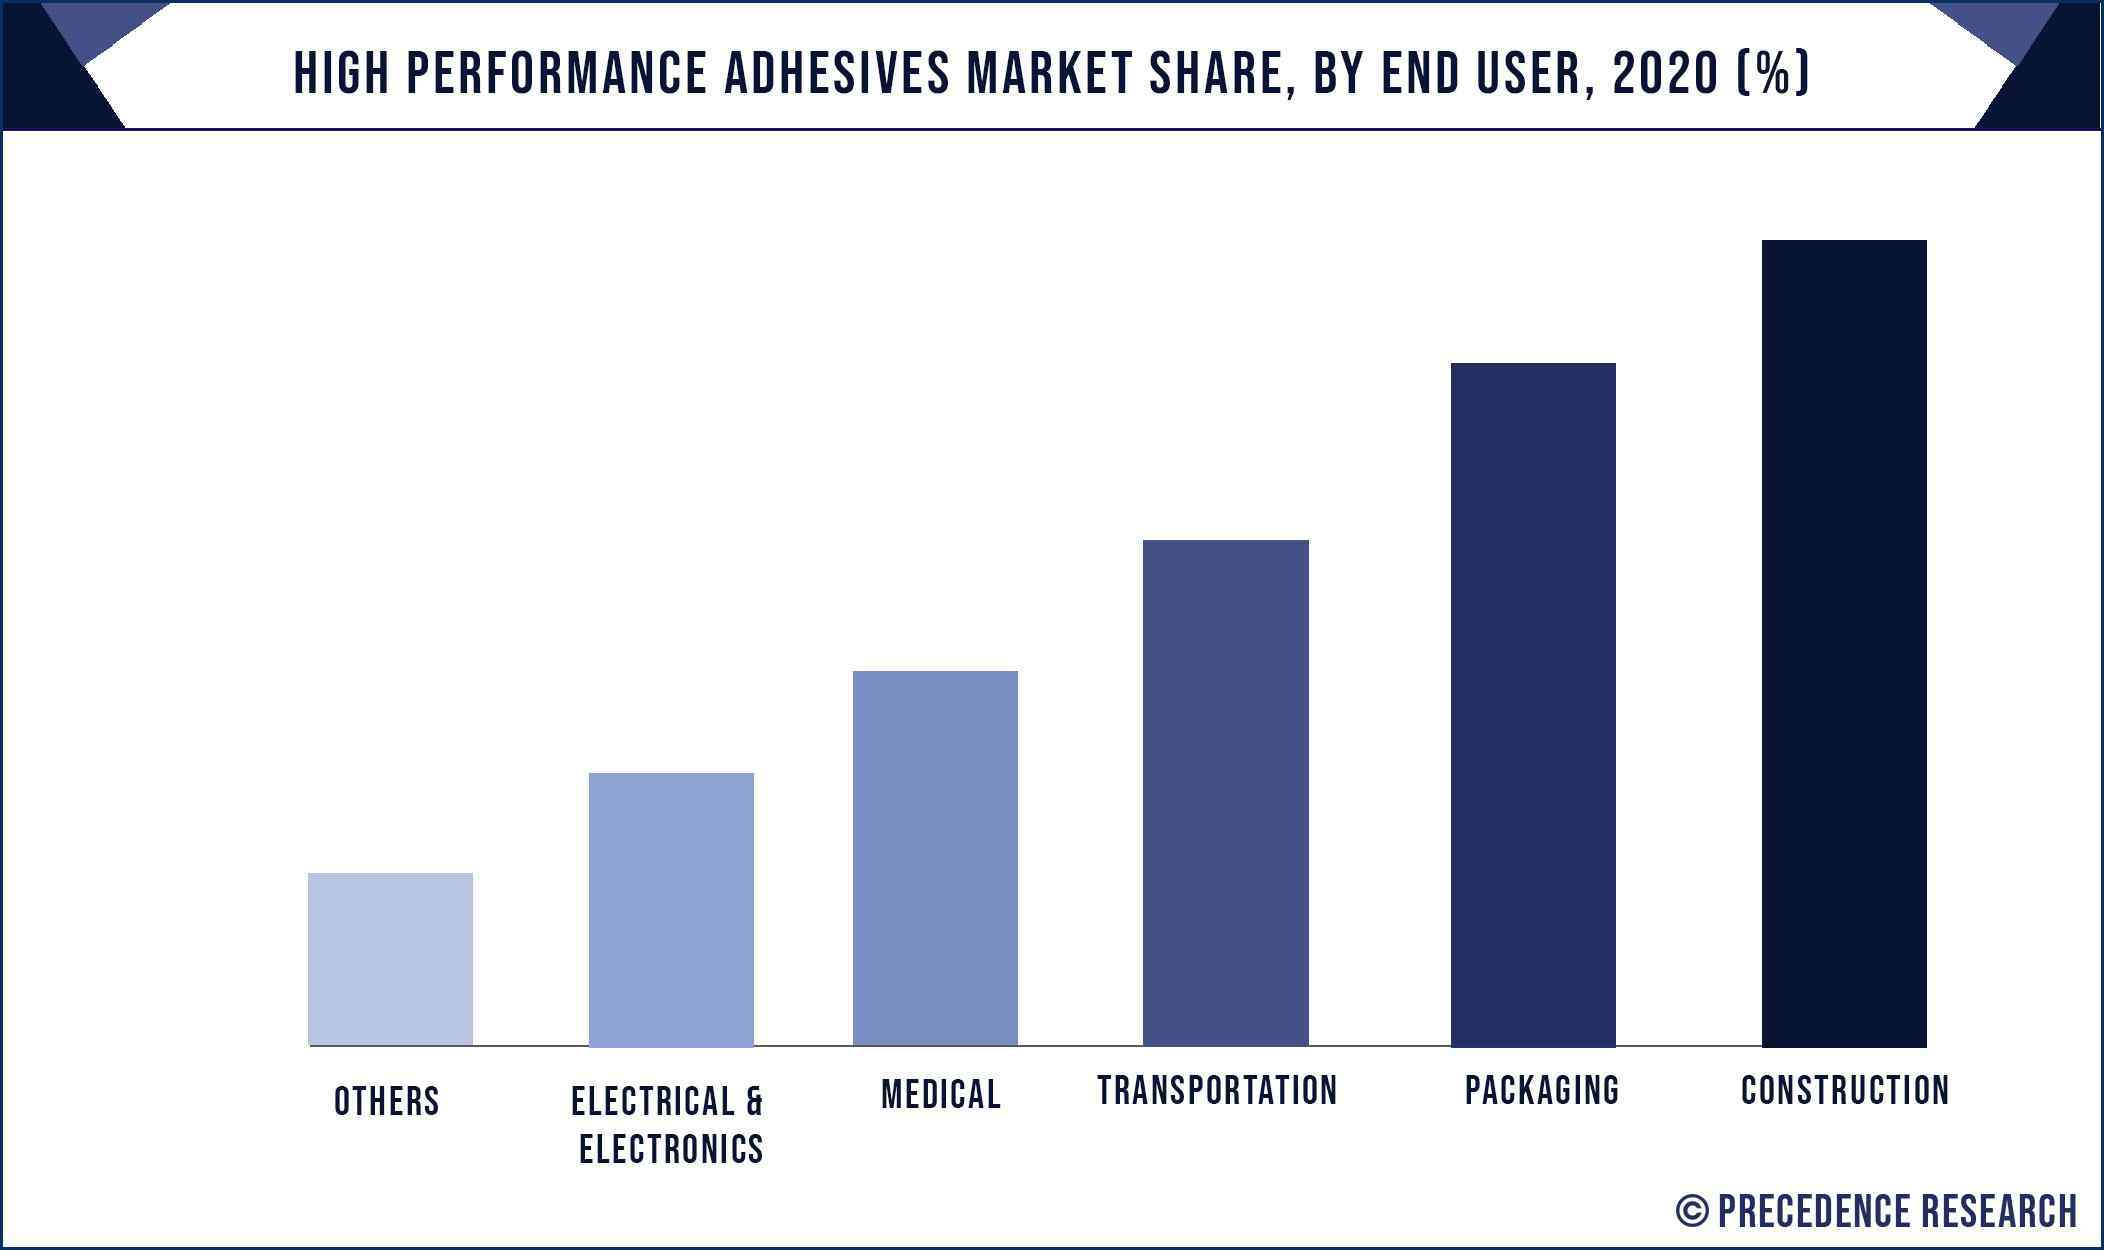 High Performance Adhesives Market Share, By End User, 2020 (%)